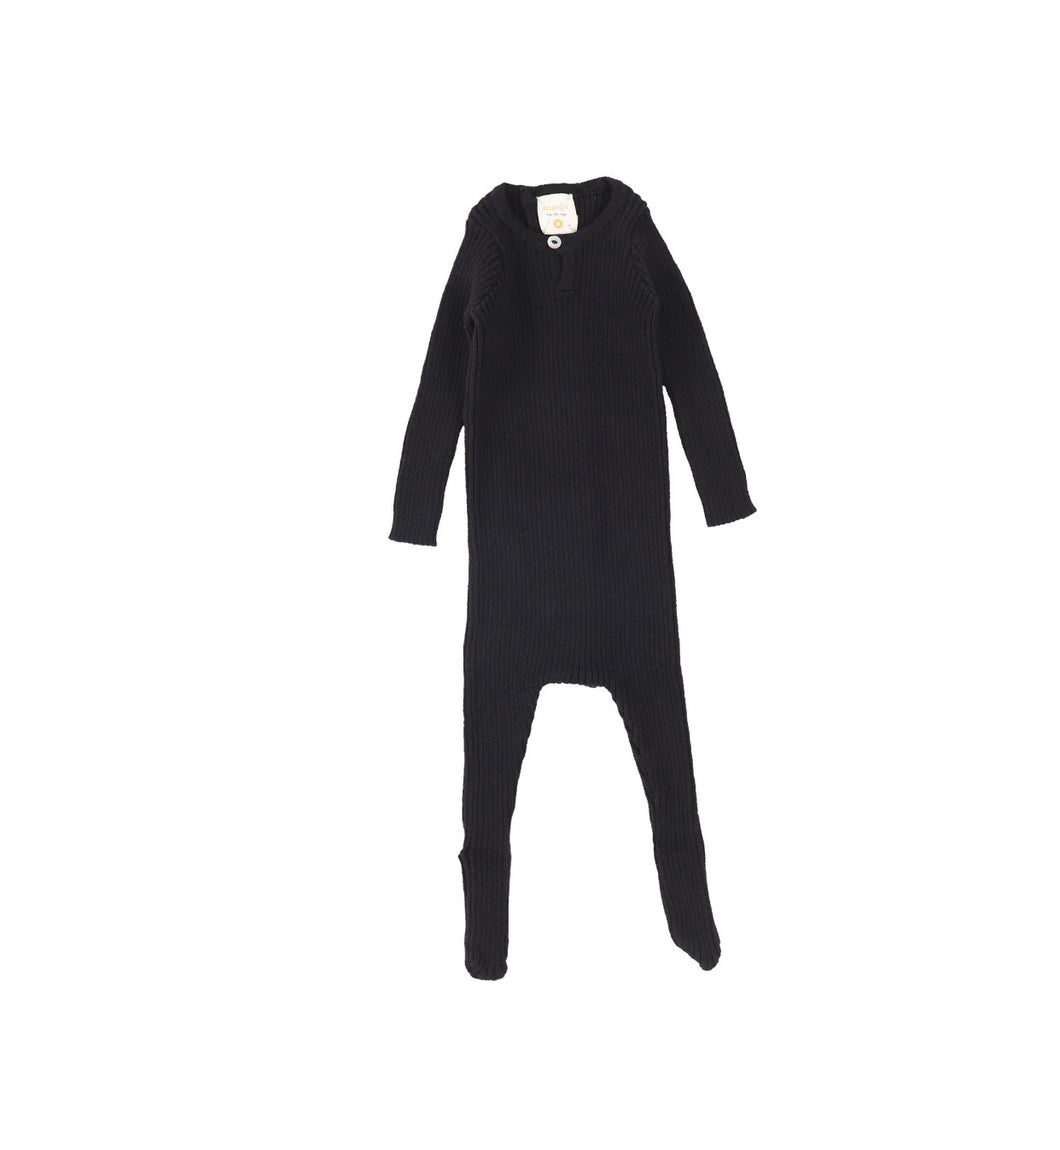 Lil Leggs Black Knit Footie